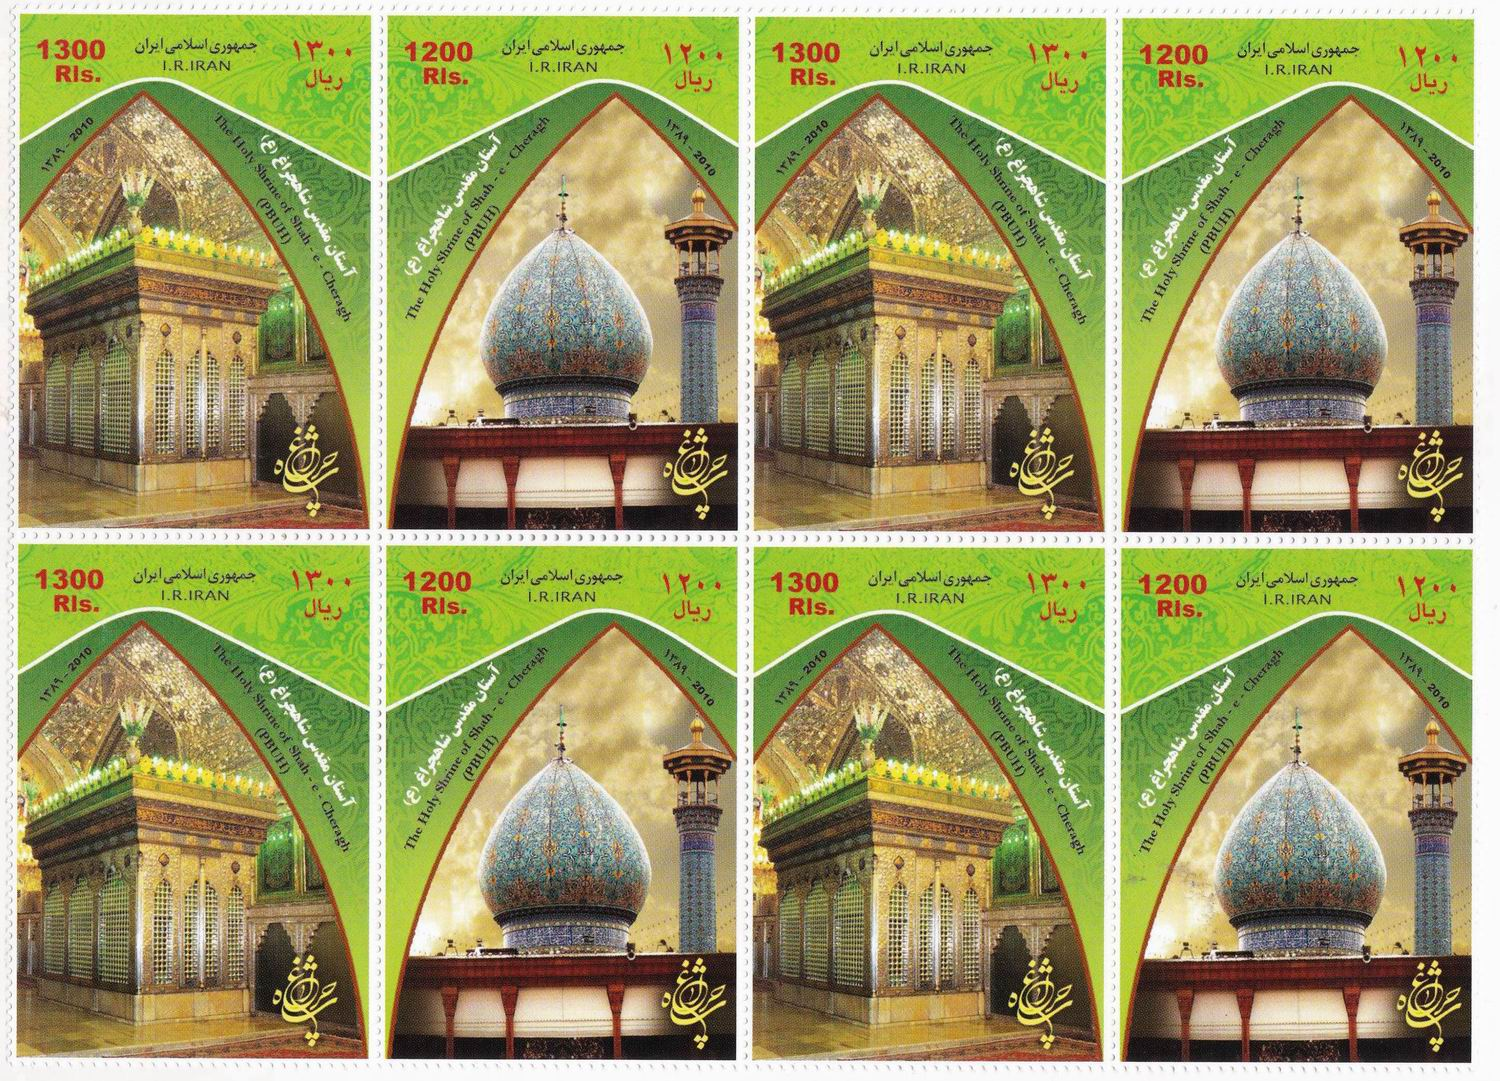 Iran 2010 Stamps Holy Shrine of Shah-e-Chiragh Mosque